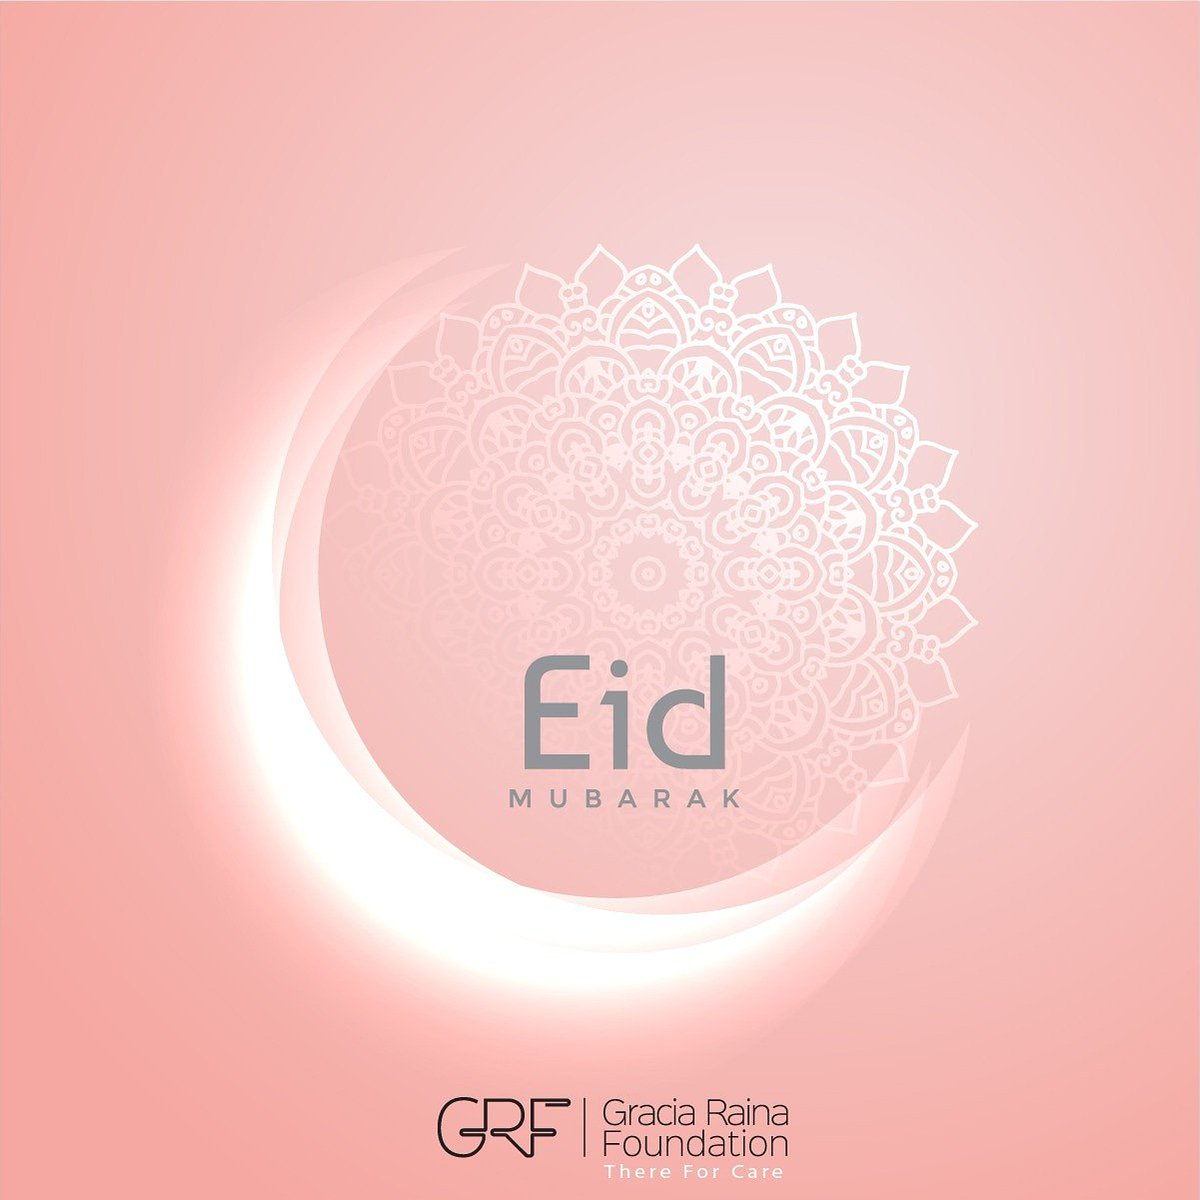 May all the joys of life be showered on you. Wish you and your family #EidMubarak